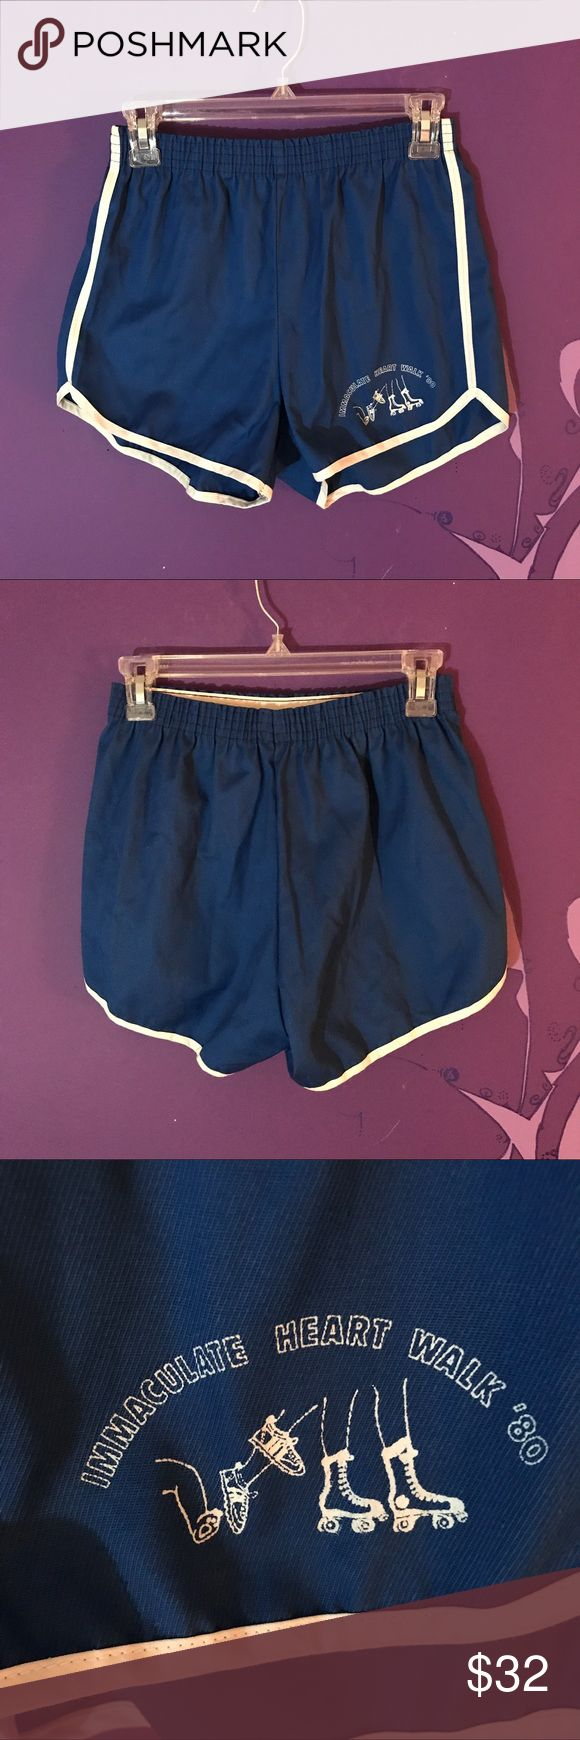 Vintage athletic shorts 1980 retro skate exercise Who wants to go roller skating?!? Take a look at these vintage blue athletic shorts from 1980!! Couldn't find too much on the immaculate heart walk but these are cute. Size medium. Fits small. LINK IN BIO!!! #shorts #fashion #womensshoes #womensfashion #womensclothing #menswear #mensfashion #mensclothing #unisex #rollerskate #vintage #retro #disco #80s #1980 #heart #walk #athletics #exercise #health #smallbusiness #forsale #depop #ebay…